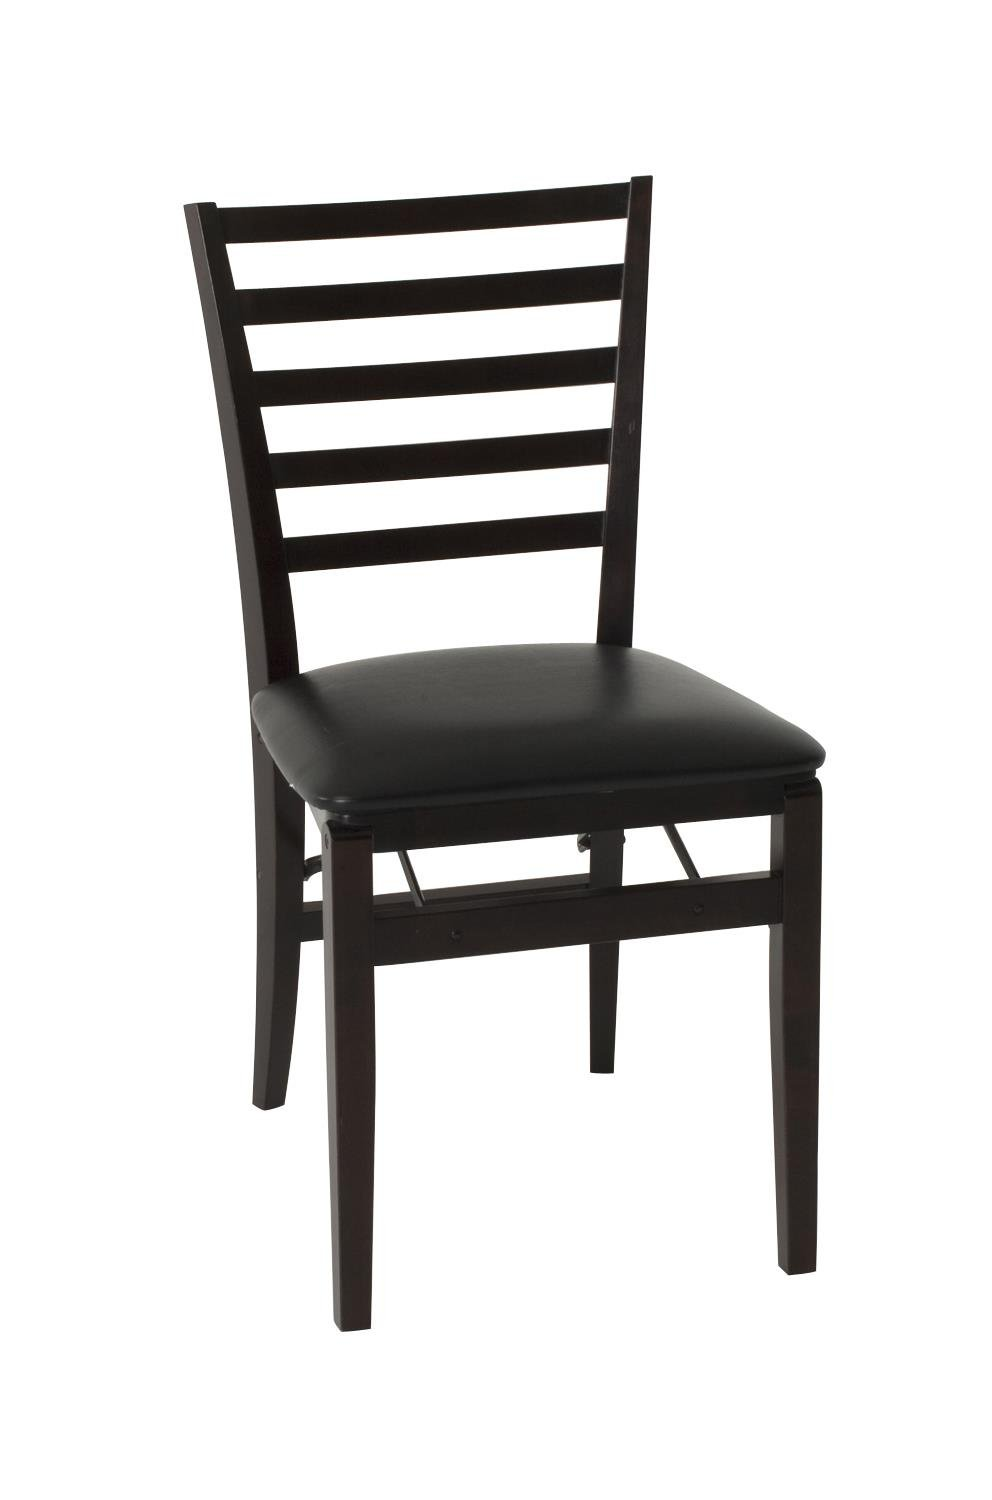 COSCO Contoured Back Wood Folding Chair with Vinyl Seat, Espresso, 2-Pack 37292ESP2X